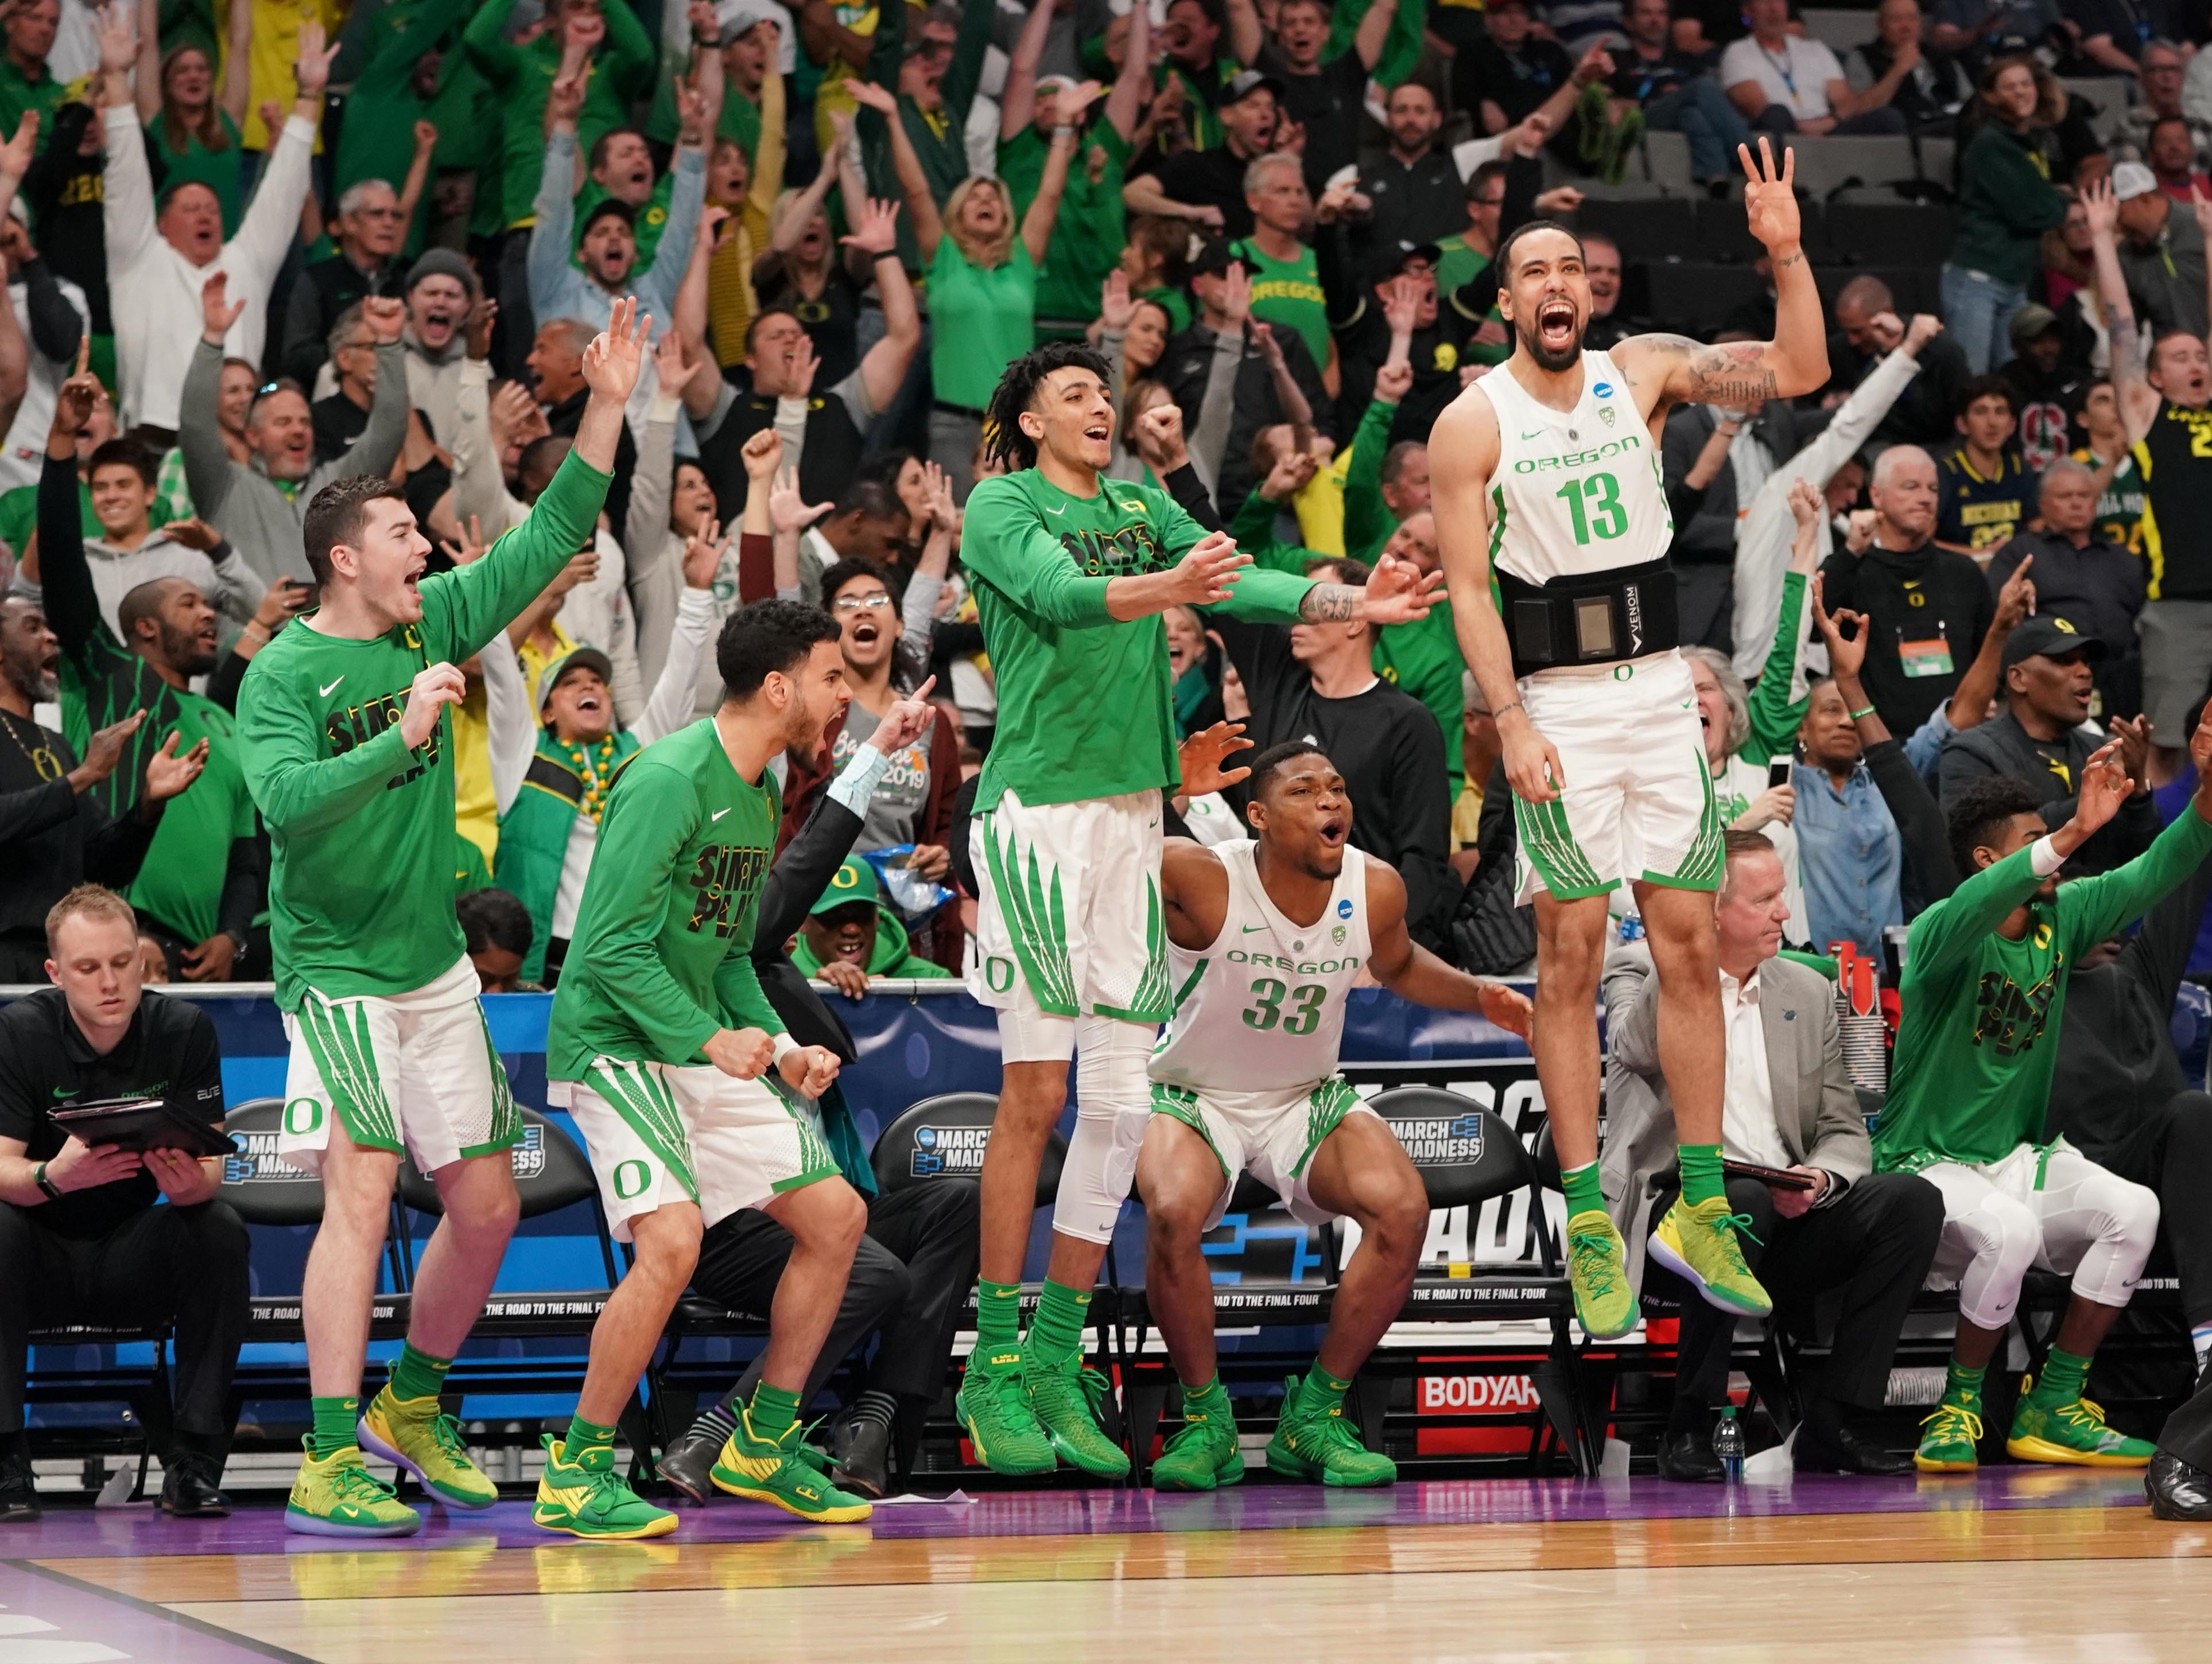 Round of 32: The Oregon Ducks bench celebrates a 3-pointer during the second half against the UC Irvine Anteaters.